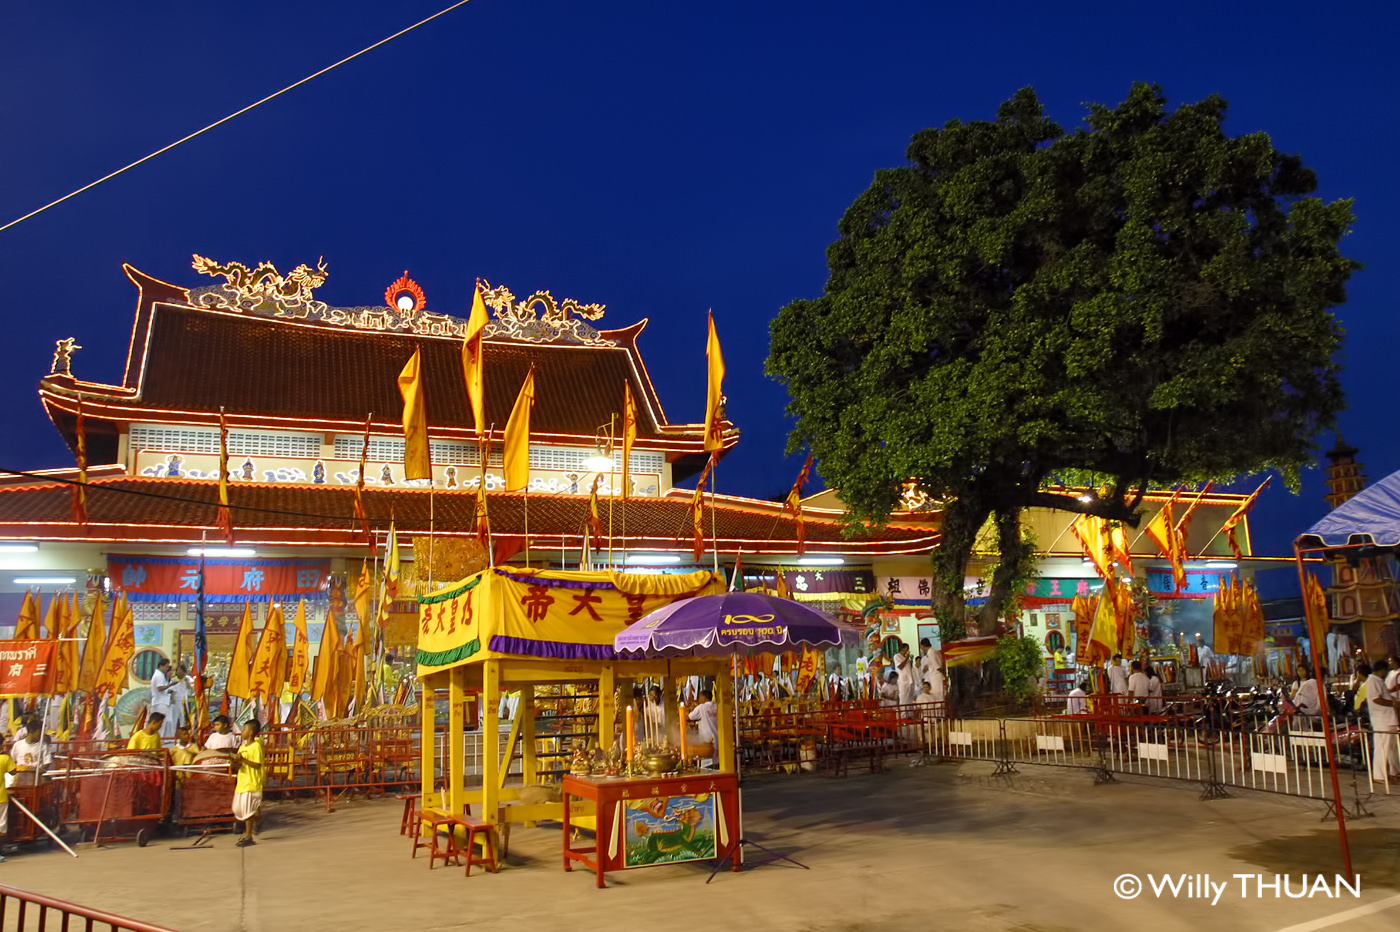 Bang Niao Shrine